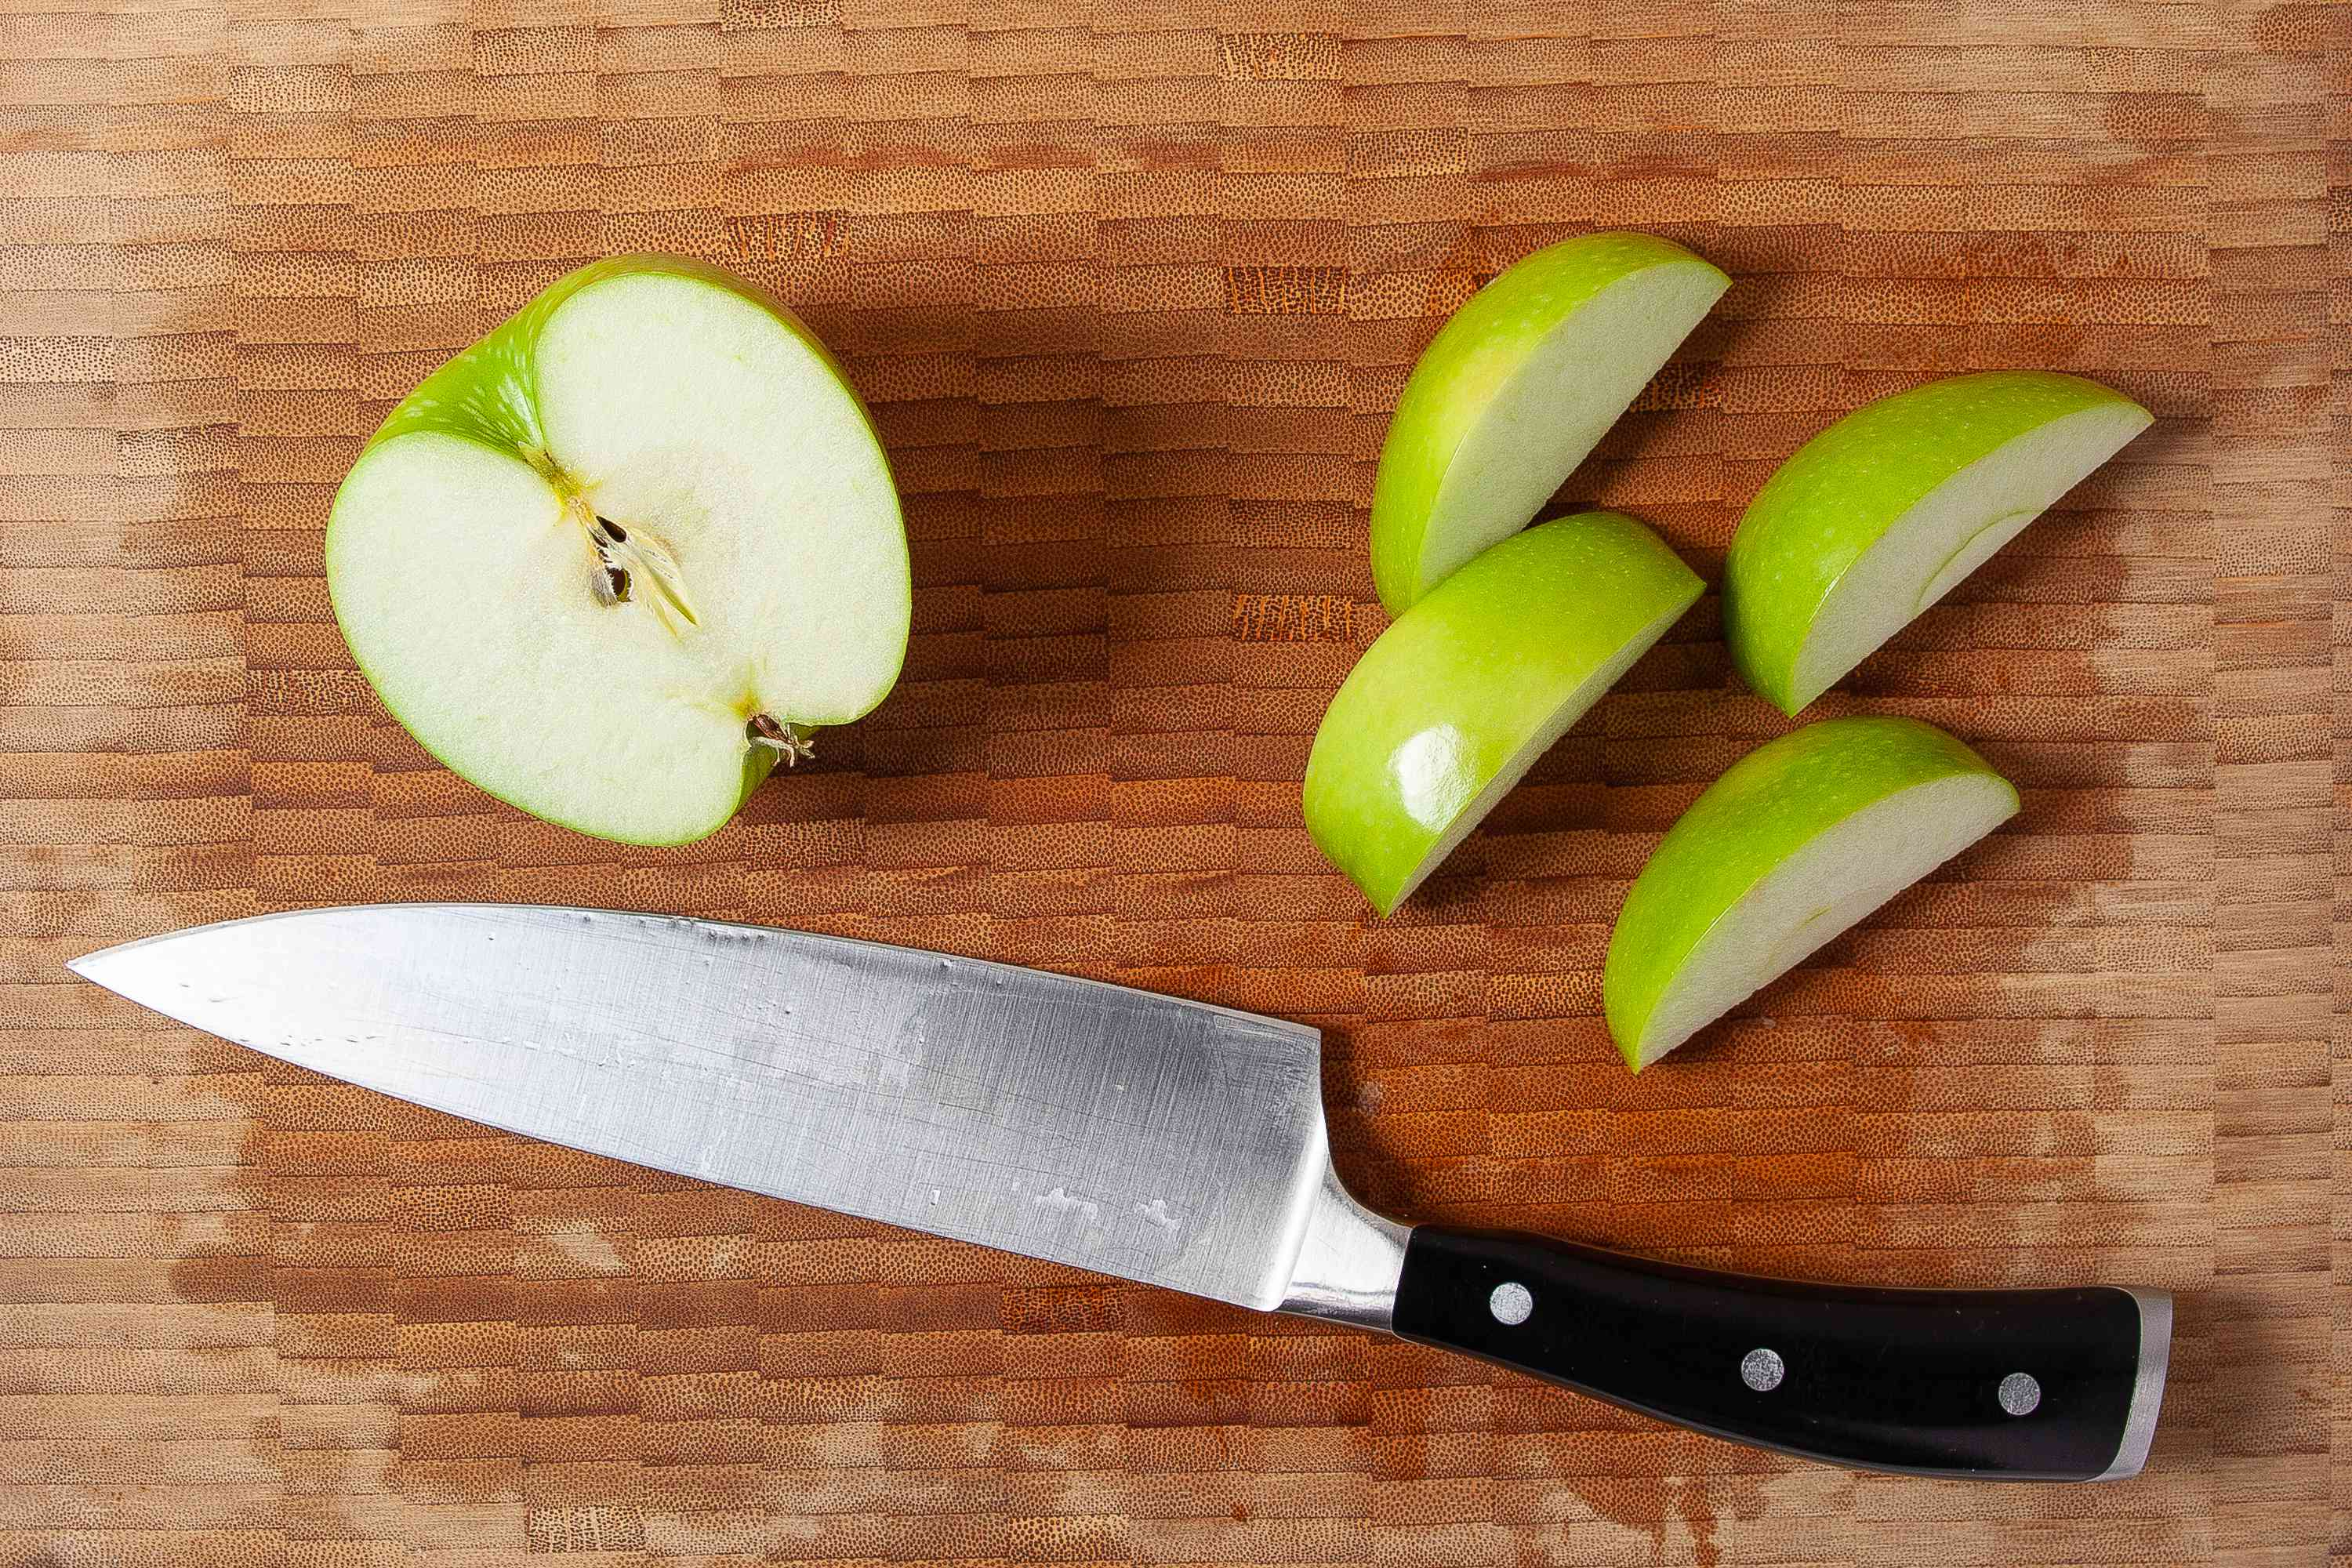 Granny smith apple cut into eight wedges on a wooden cutting board